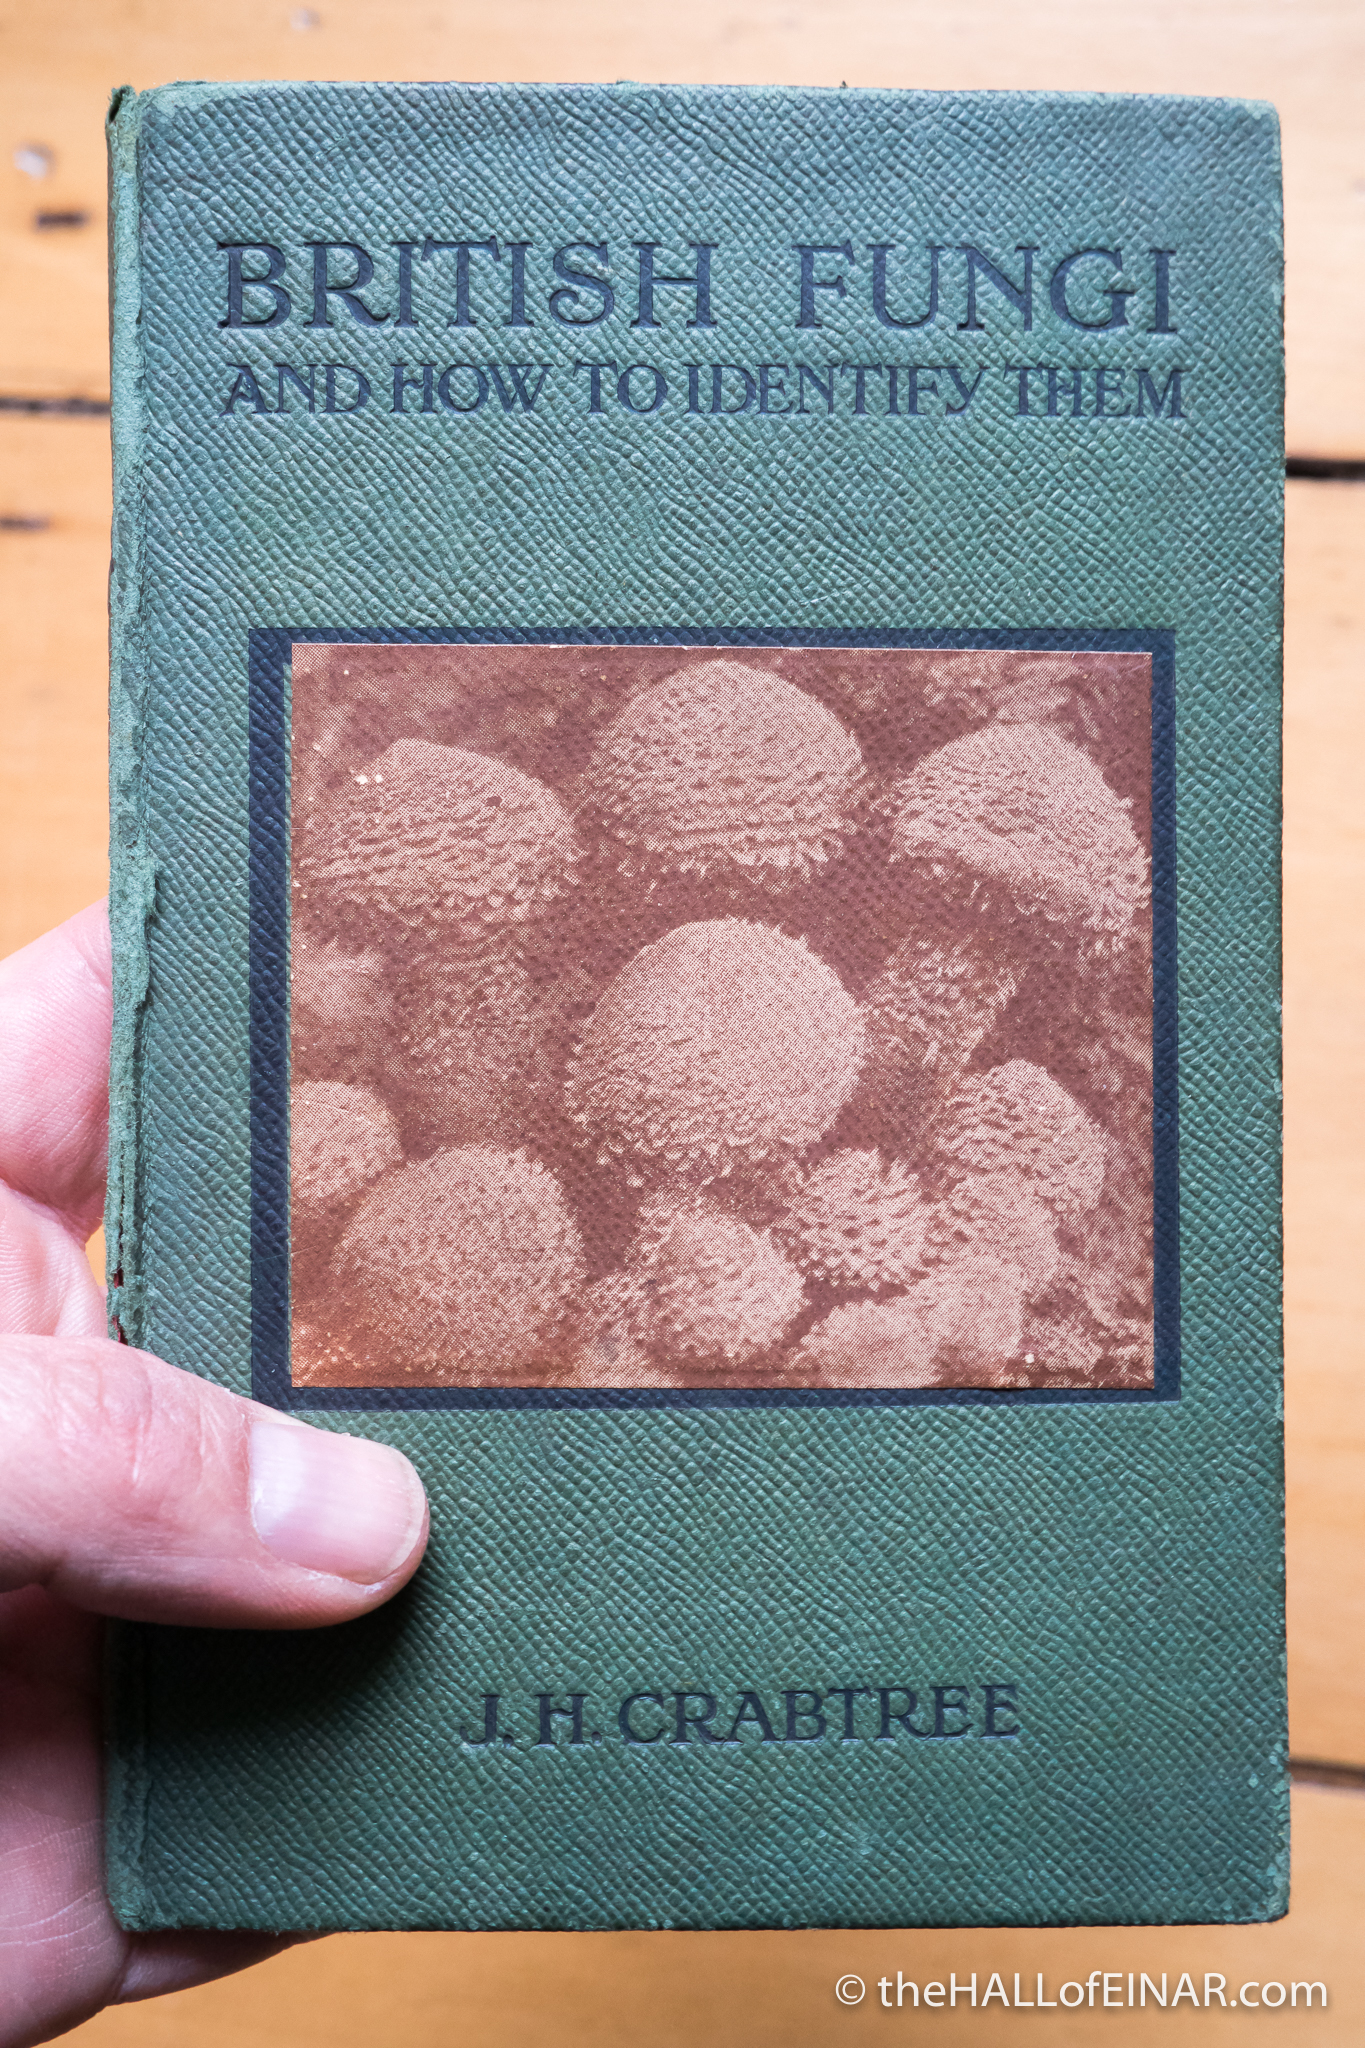 British Fungi by JH Crabtree - The Hall of Einar